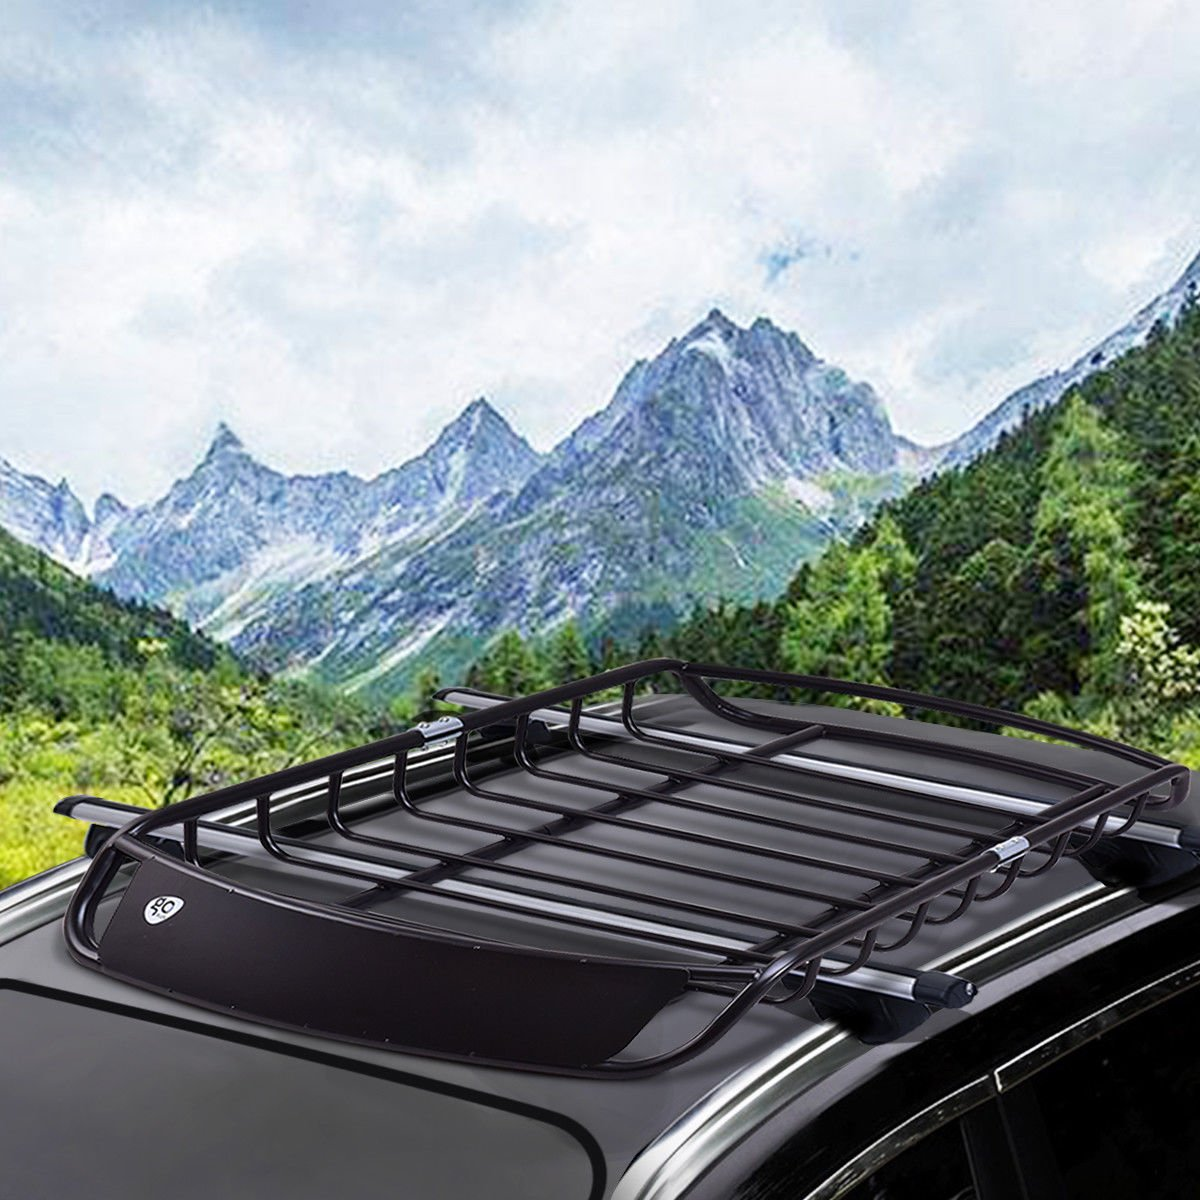 Goplus Universal Roof Cargo Rack Basket Heavy Duty Car Top Luggage Holder Carrier with 4 U-Bolts